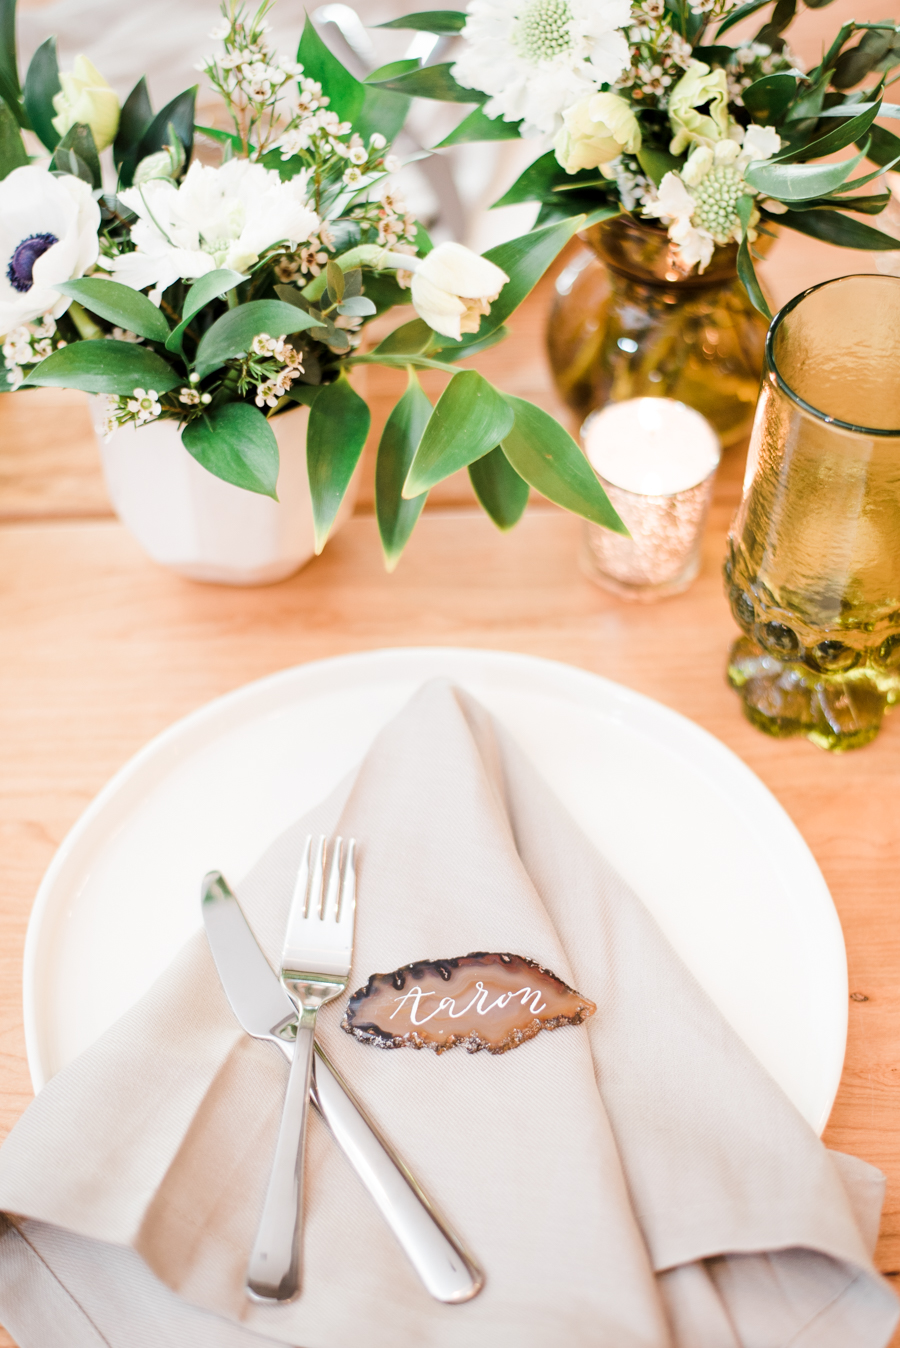 place settings - photo by Maggie Mills Photography http://ruffledblog.com/romantic-southern-wedding-inspiration-in-charlotte